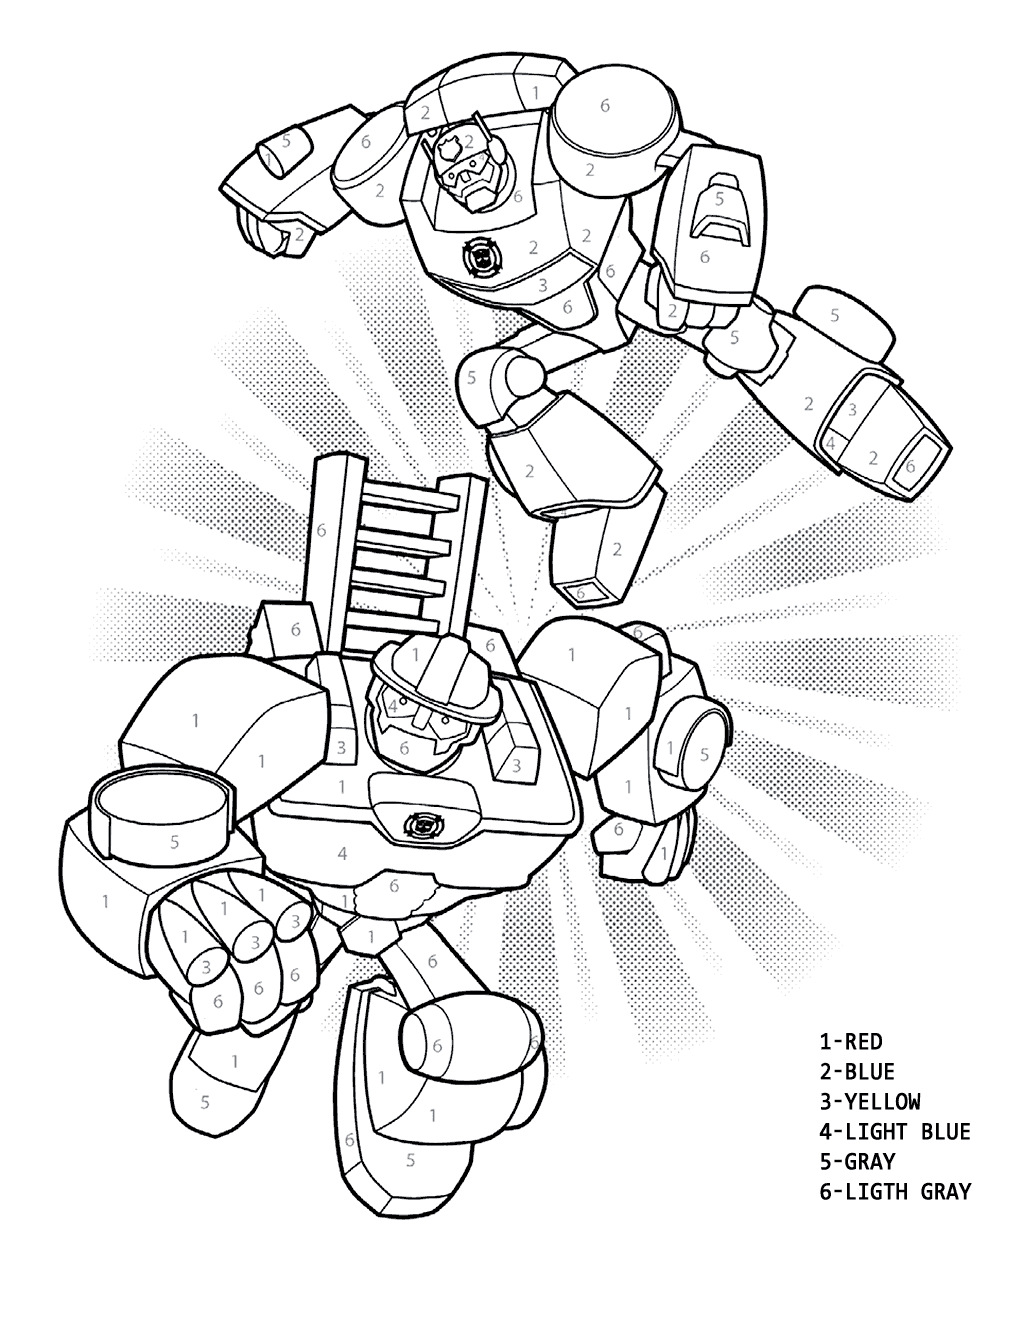 Rescue Bots Coloring Pages Best Coloring Pages For Kids In 2020 Transformers Coloring Pages Coloring Pages Cartoon Coloring Pages